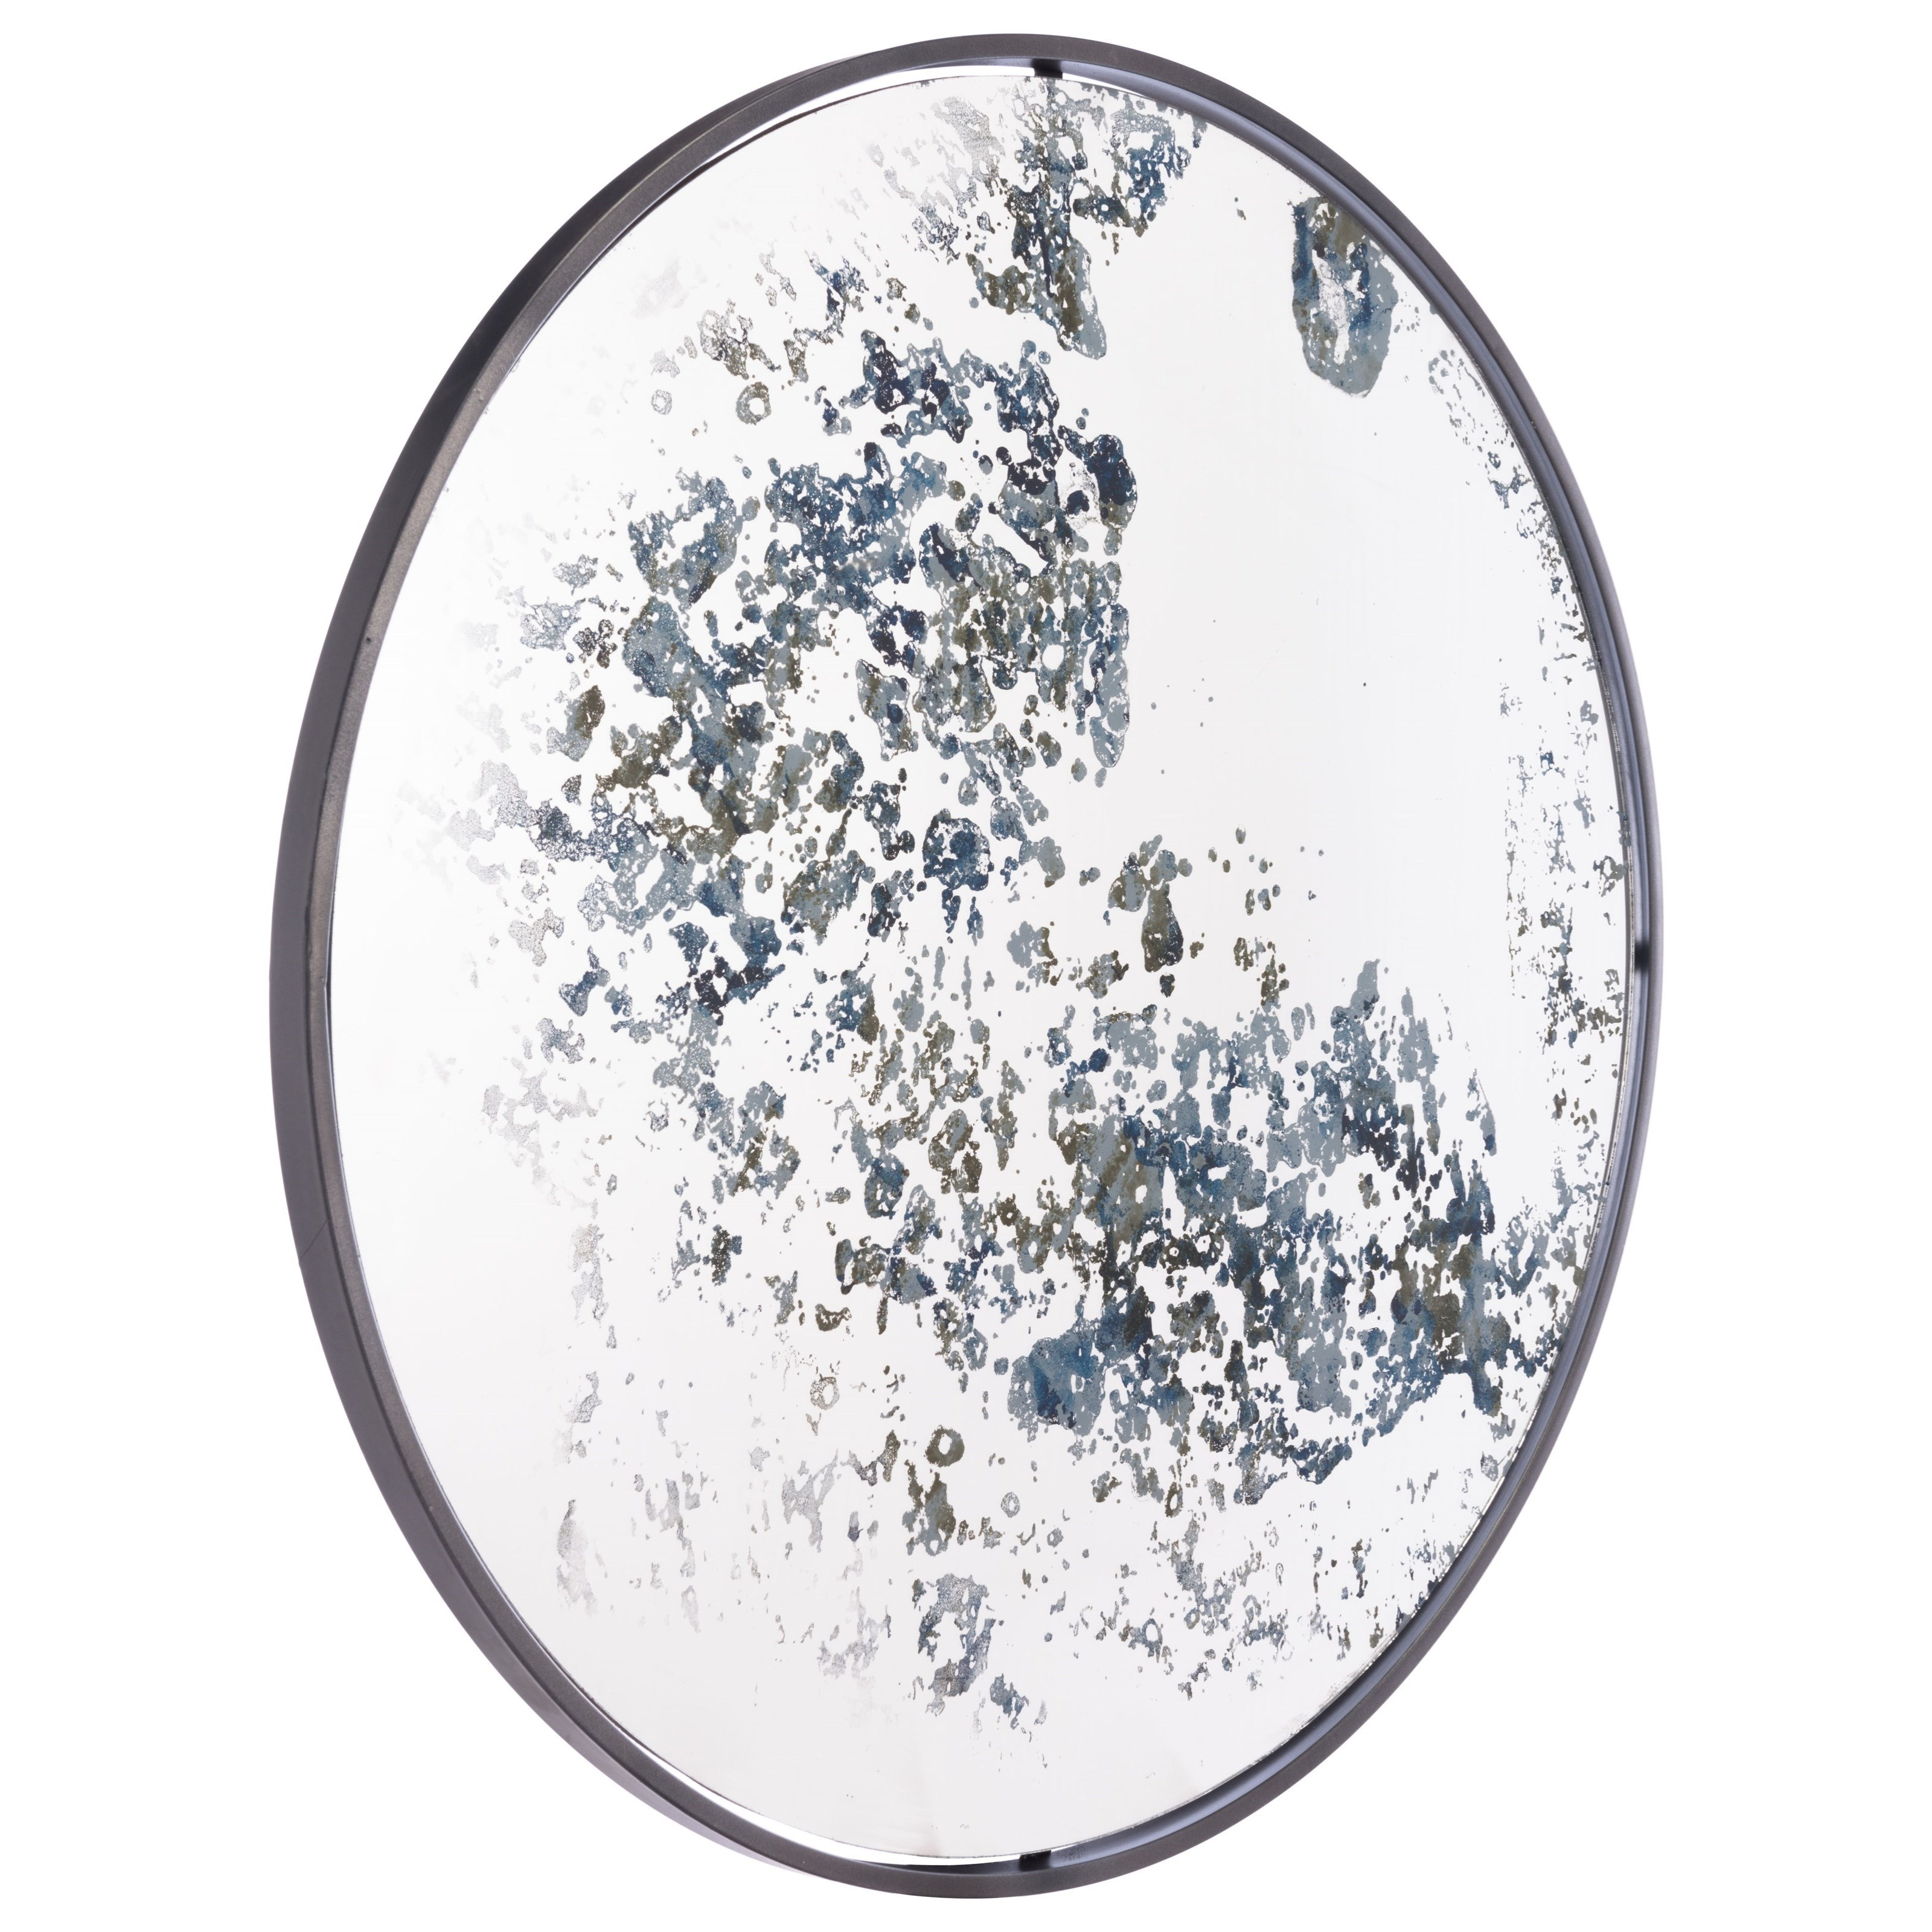 Zuo Mirrors Round Mirror - Item Number: A10822